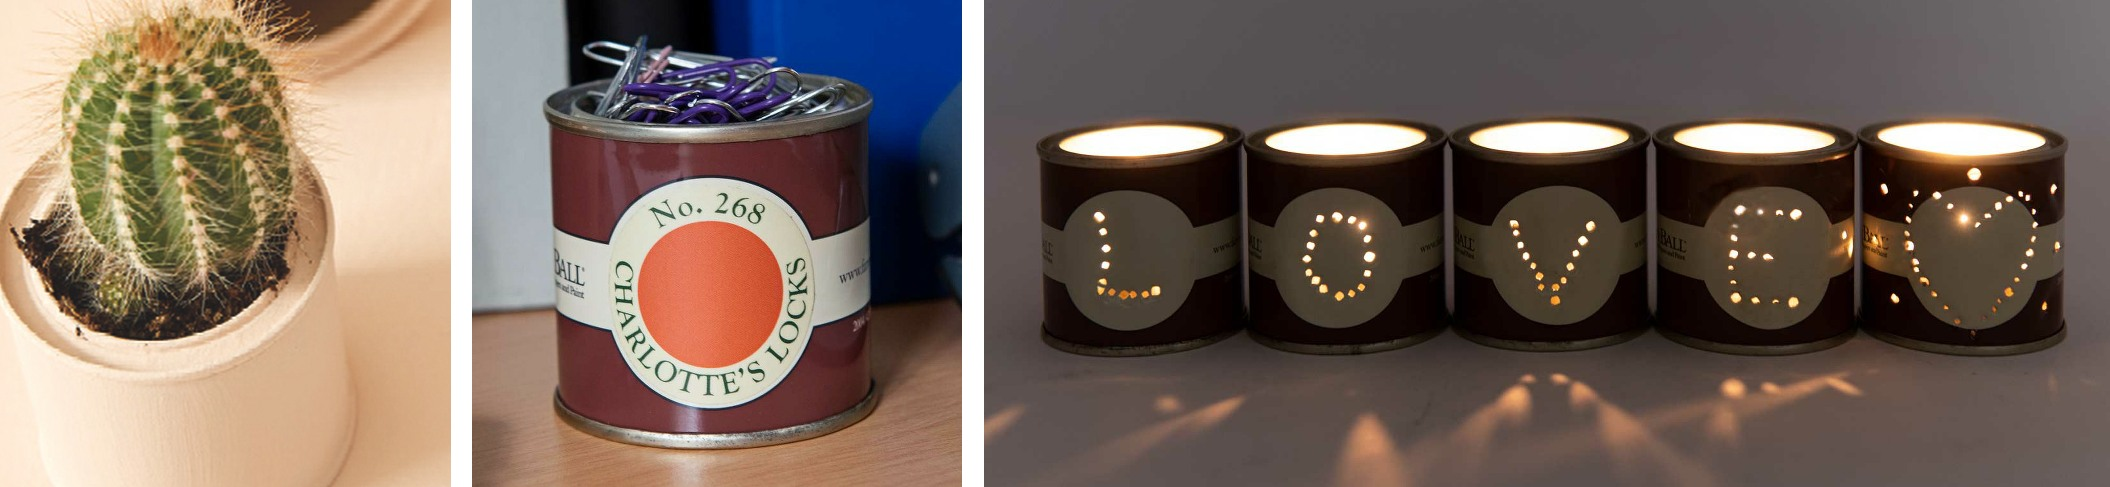 Ways to Upcycle Paint Tins